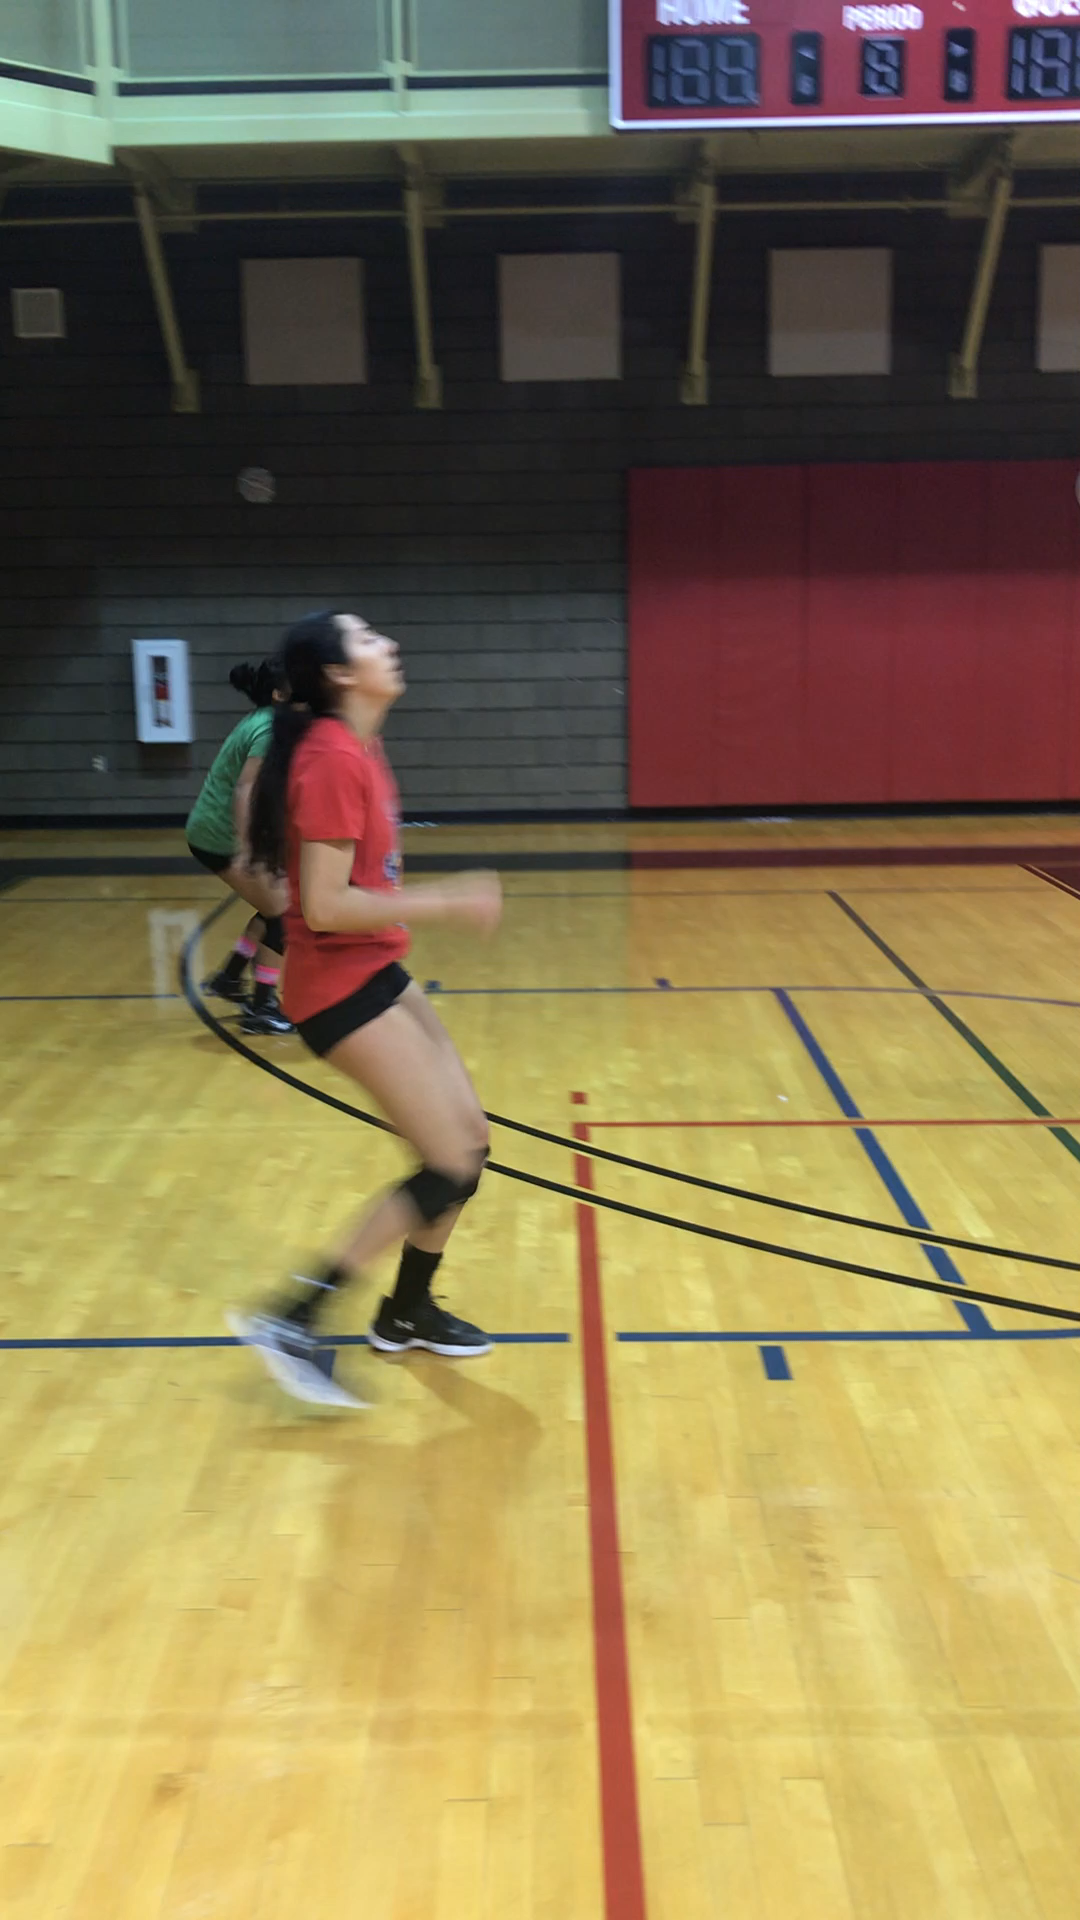 2 Volleyball Passing Drills How To Get Better At Passing In Volleyball Video Video Volleyball Passing Drills Volleyball Tryouts Volleyball Practice